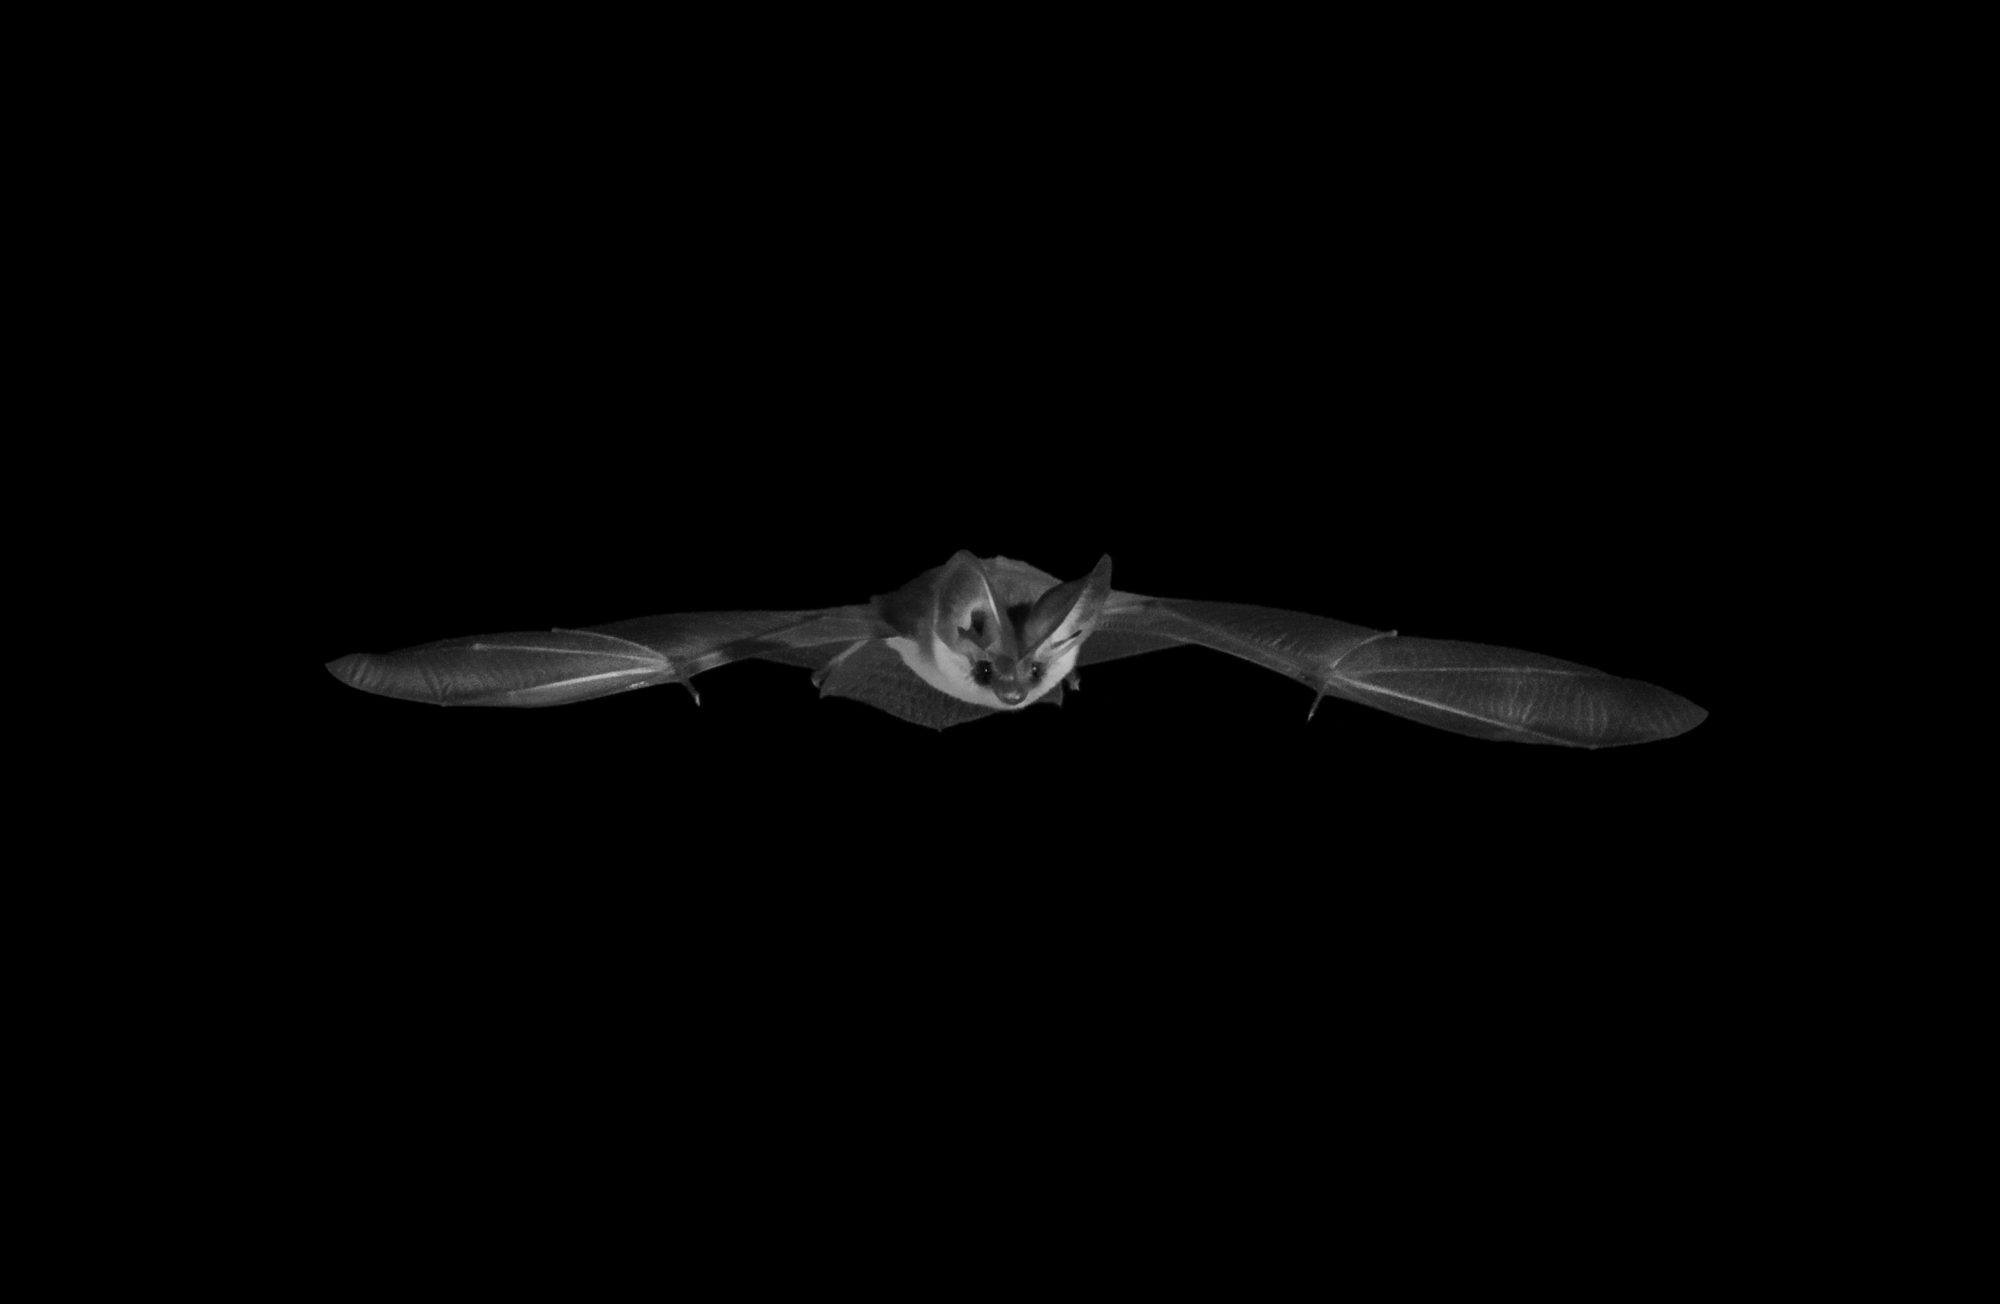 A grey long-eared bat (Plecotus austriacus) emerges from its roost in a barn in Devon, England to hunt on a summer night. This photograph was taken as part of the Back from the Brink project and was taken ethically using red light fliters to avoid disturbance to the bats. The grey long-eared bat is classified as Near Threatened by the IUCN and is Britain's rarest breeding bat.